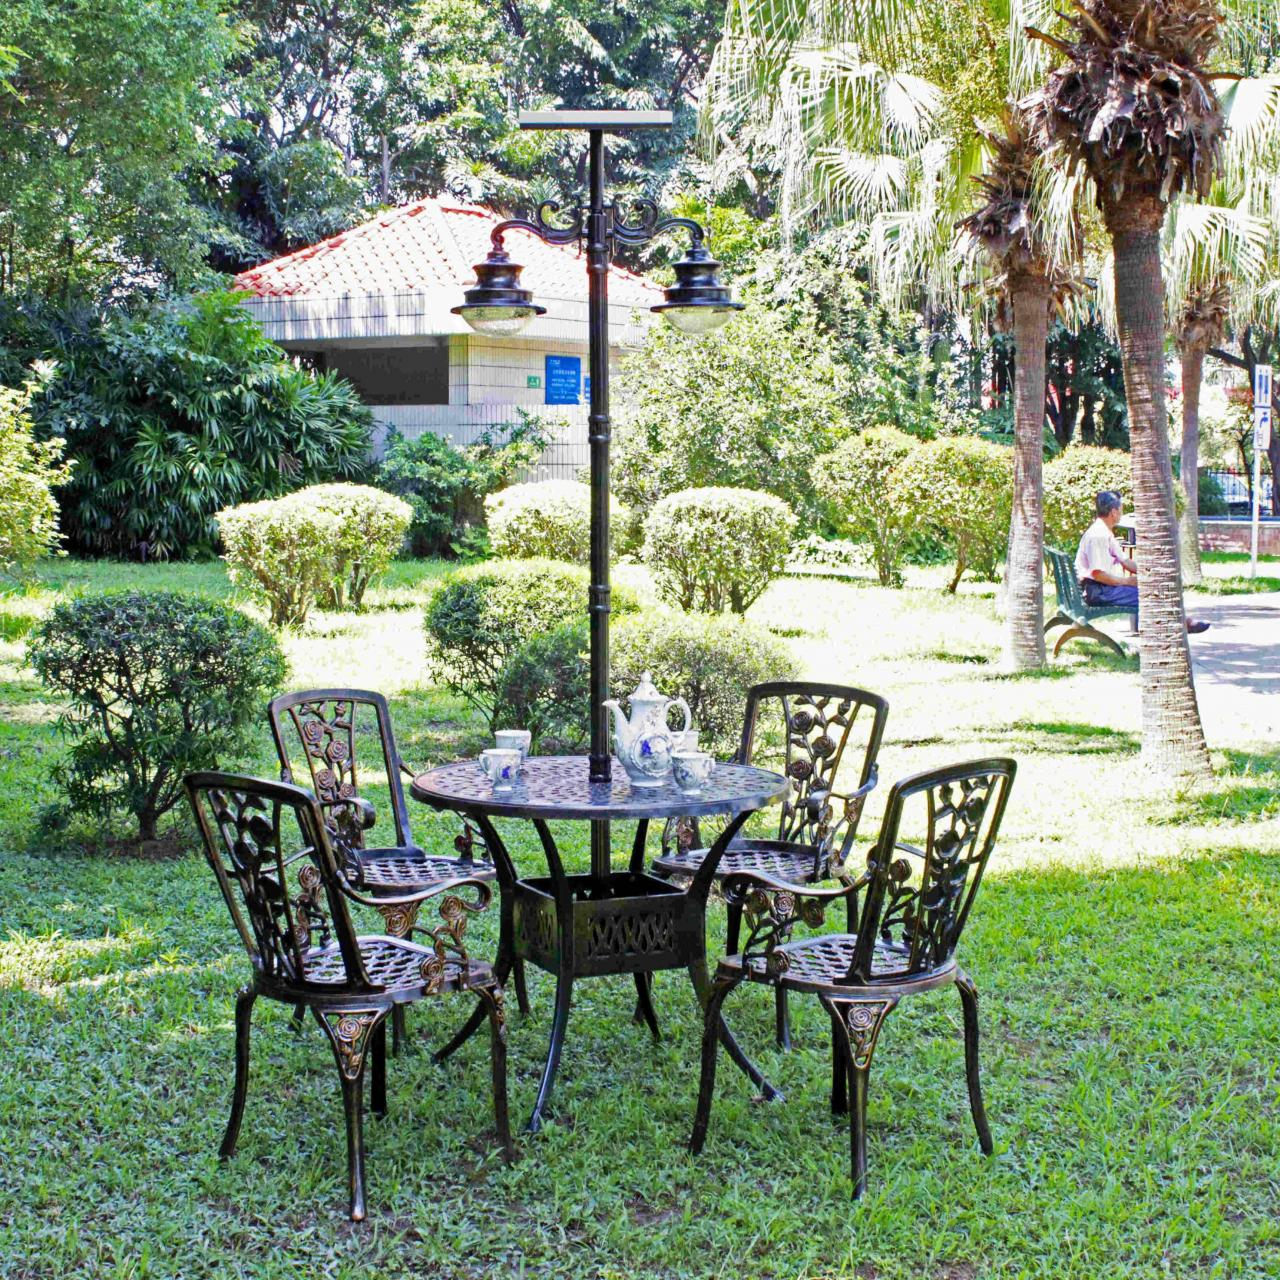 Outdoor furniture ZY-0107E462-2 Manufactures